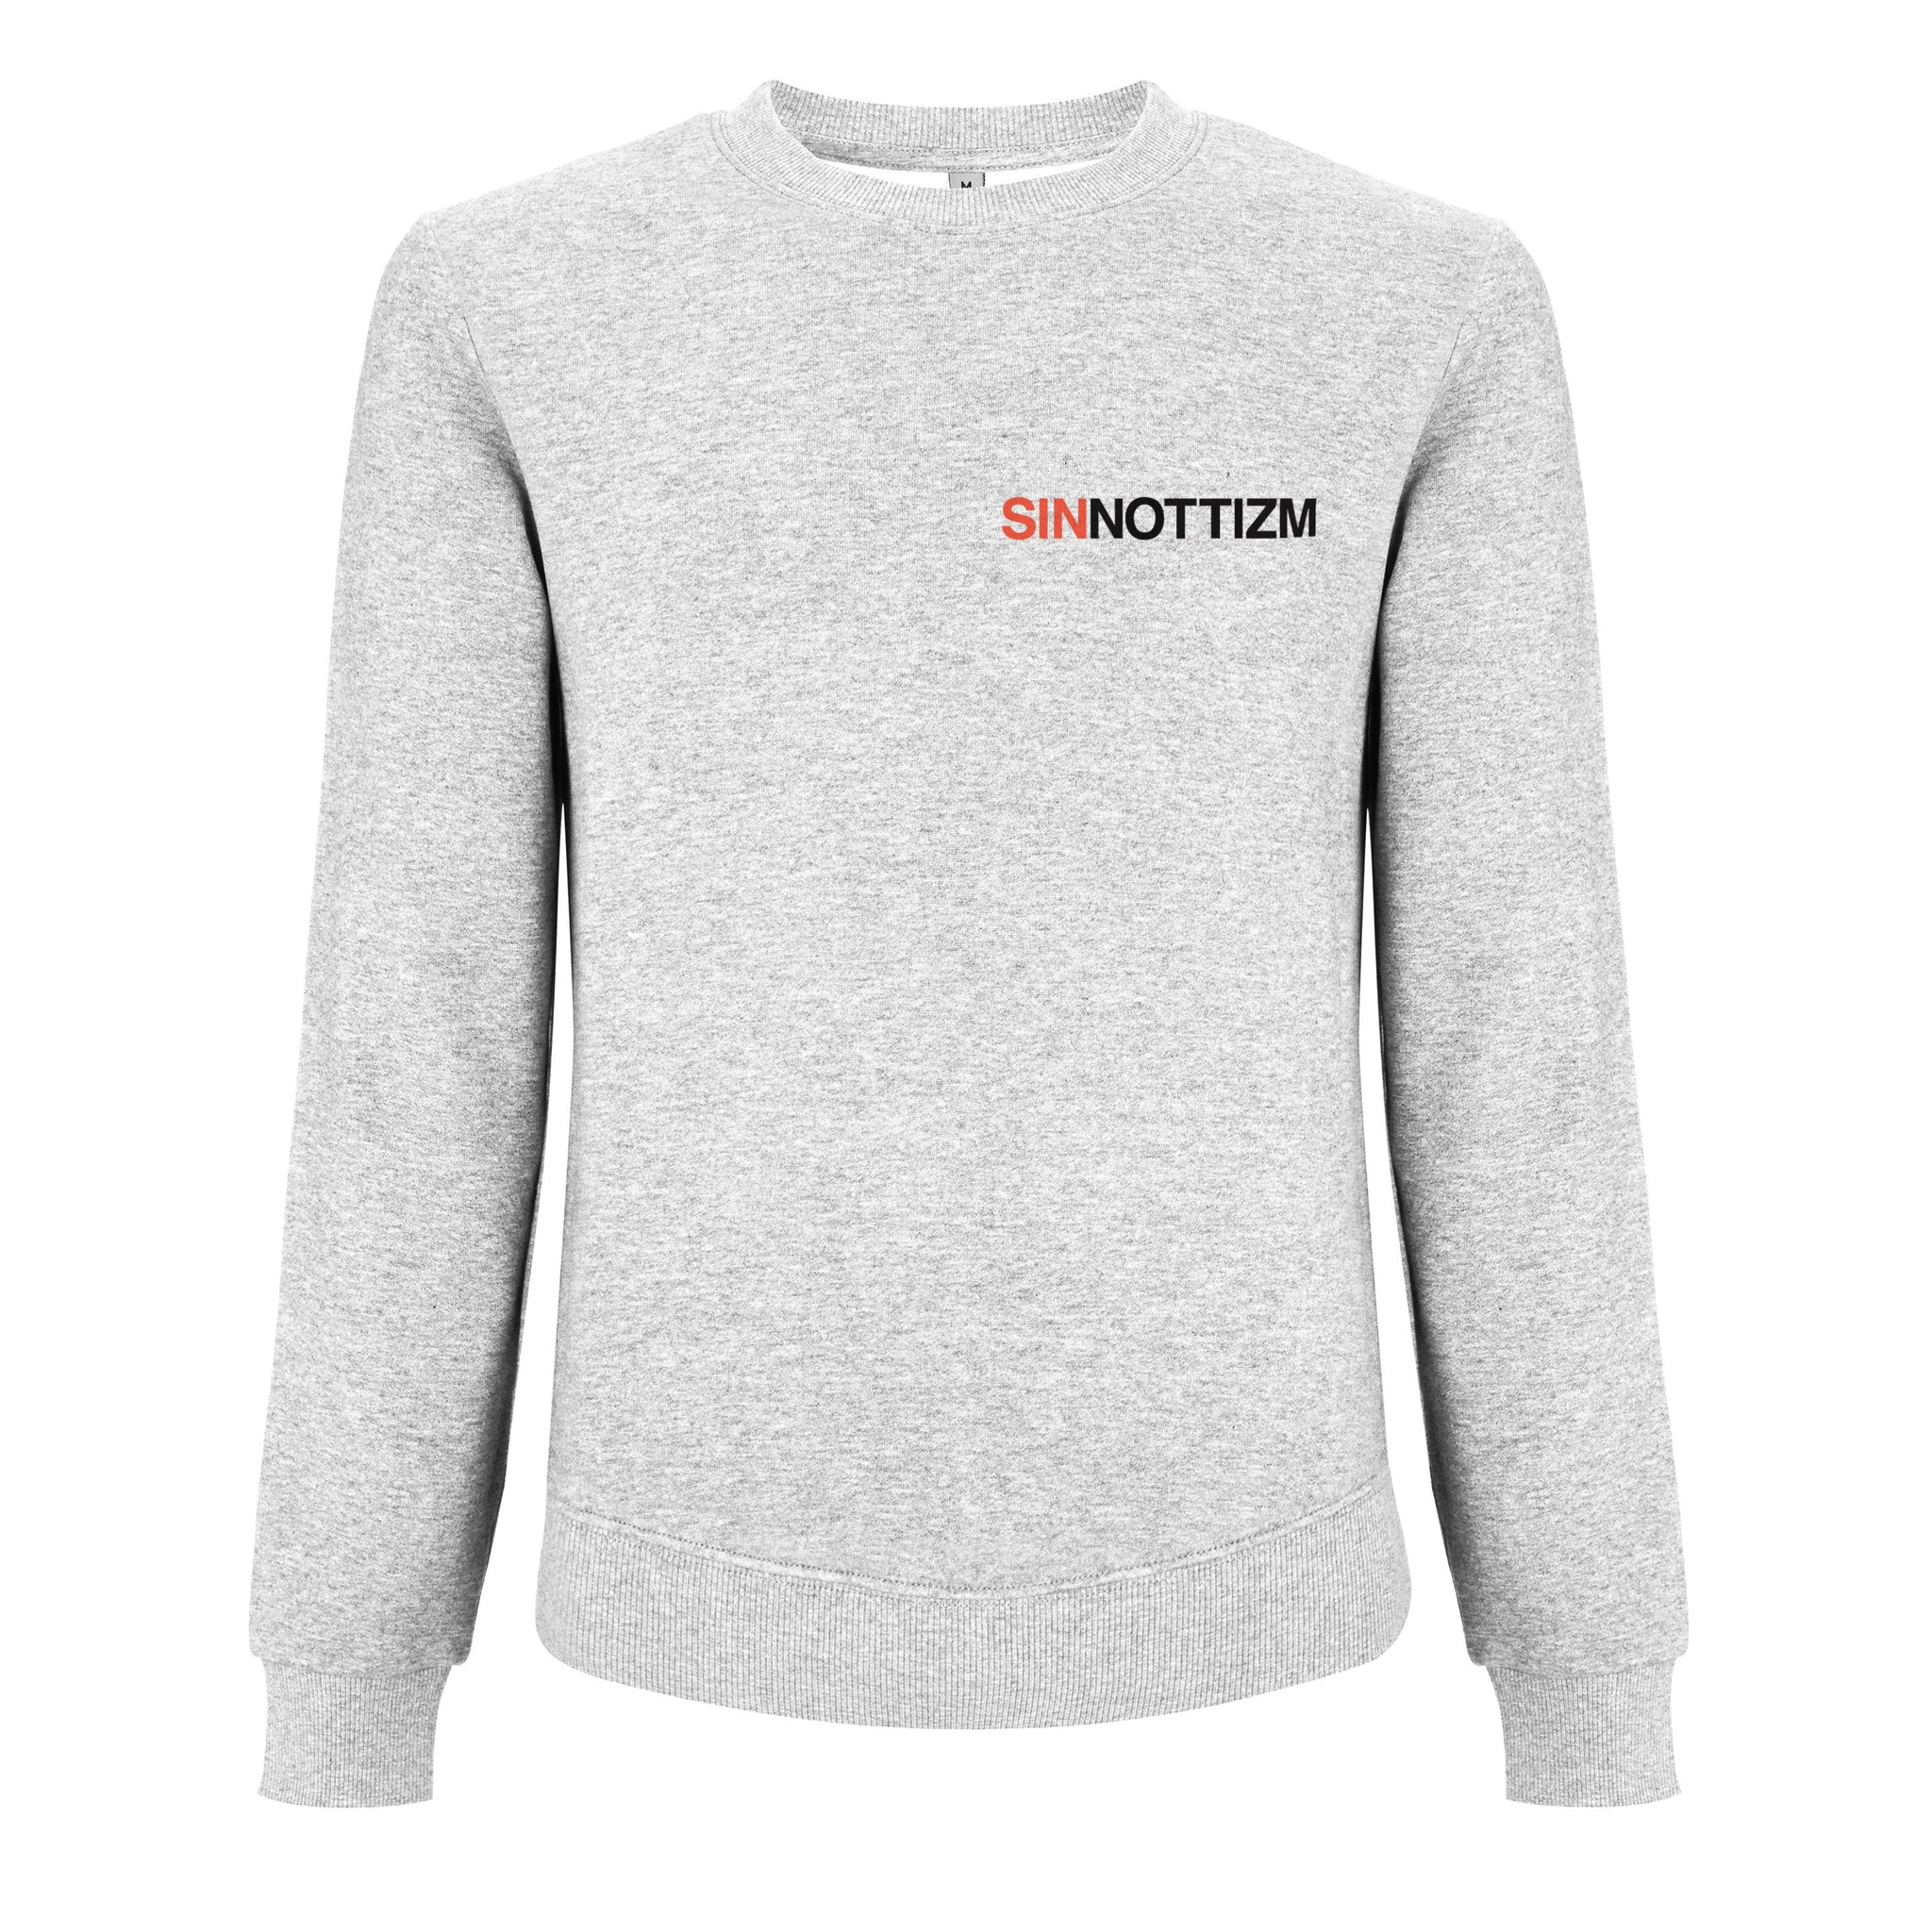 Sinnottizm Synthgirl Sweatshirt | Audio Architect Apparel